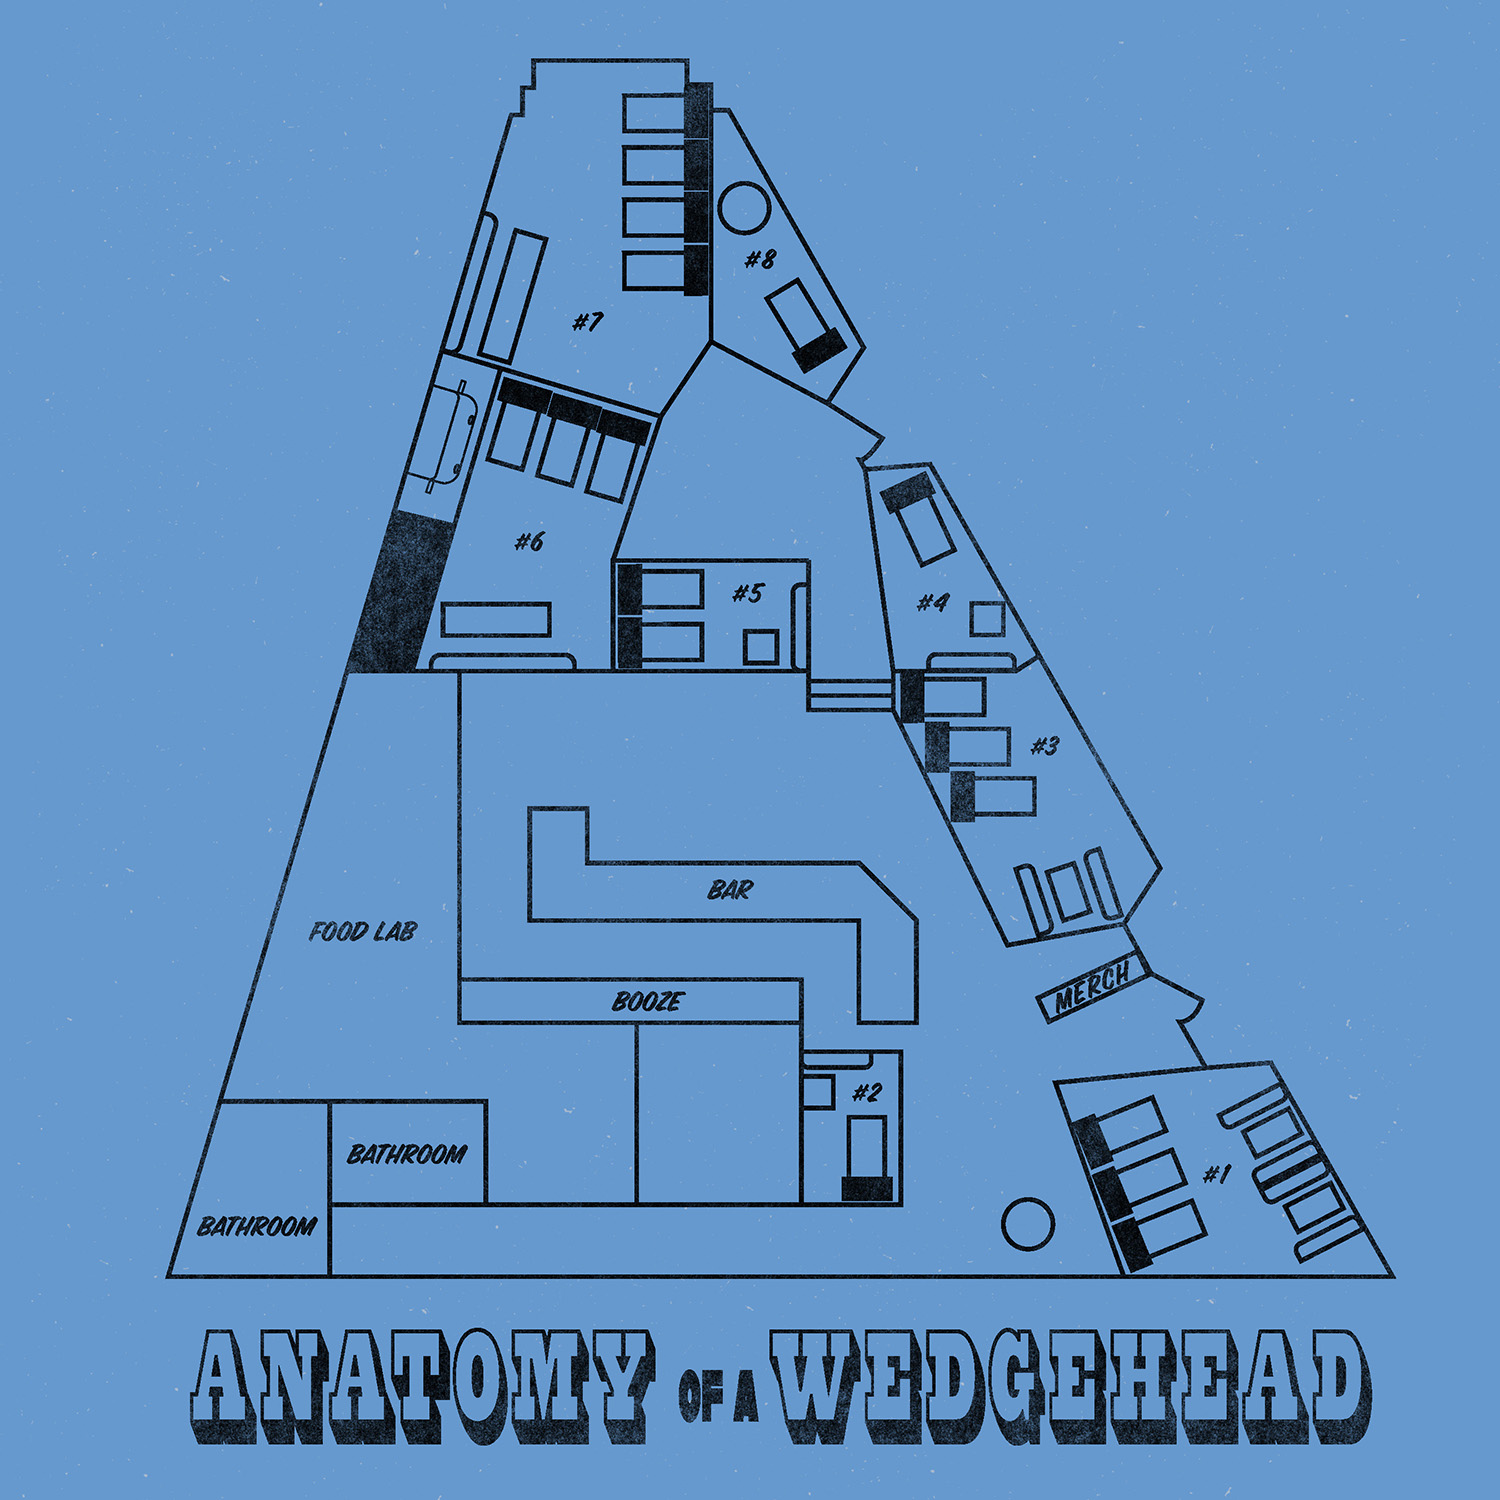 Wedgehead floor plan and pods map